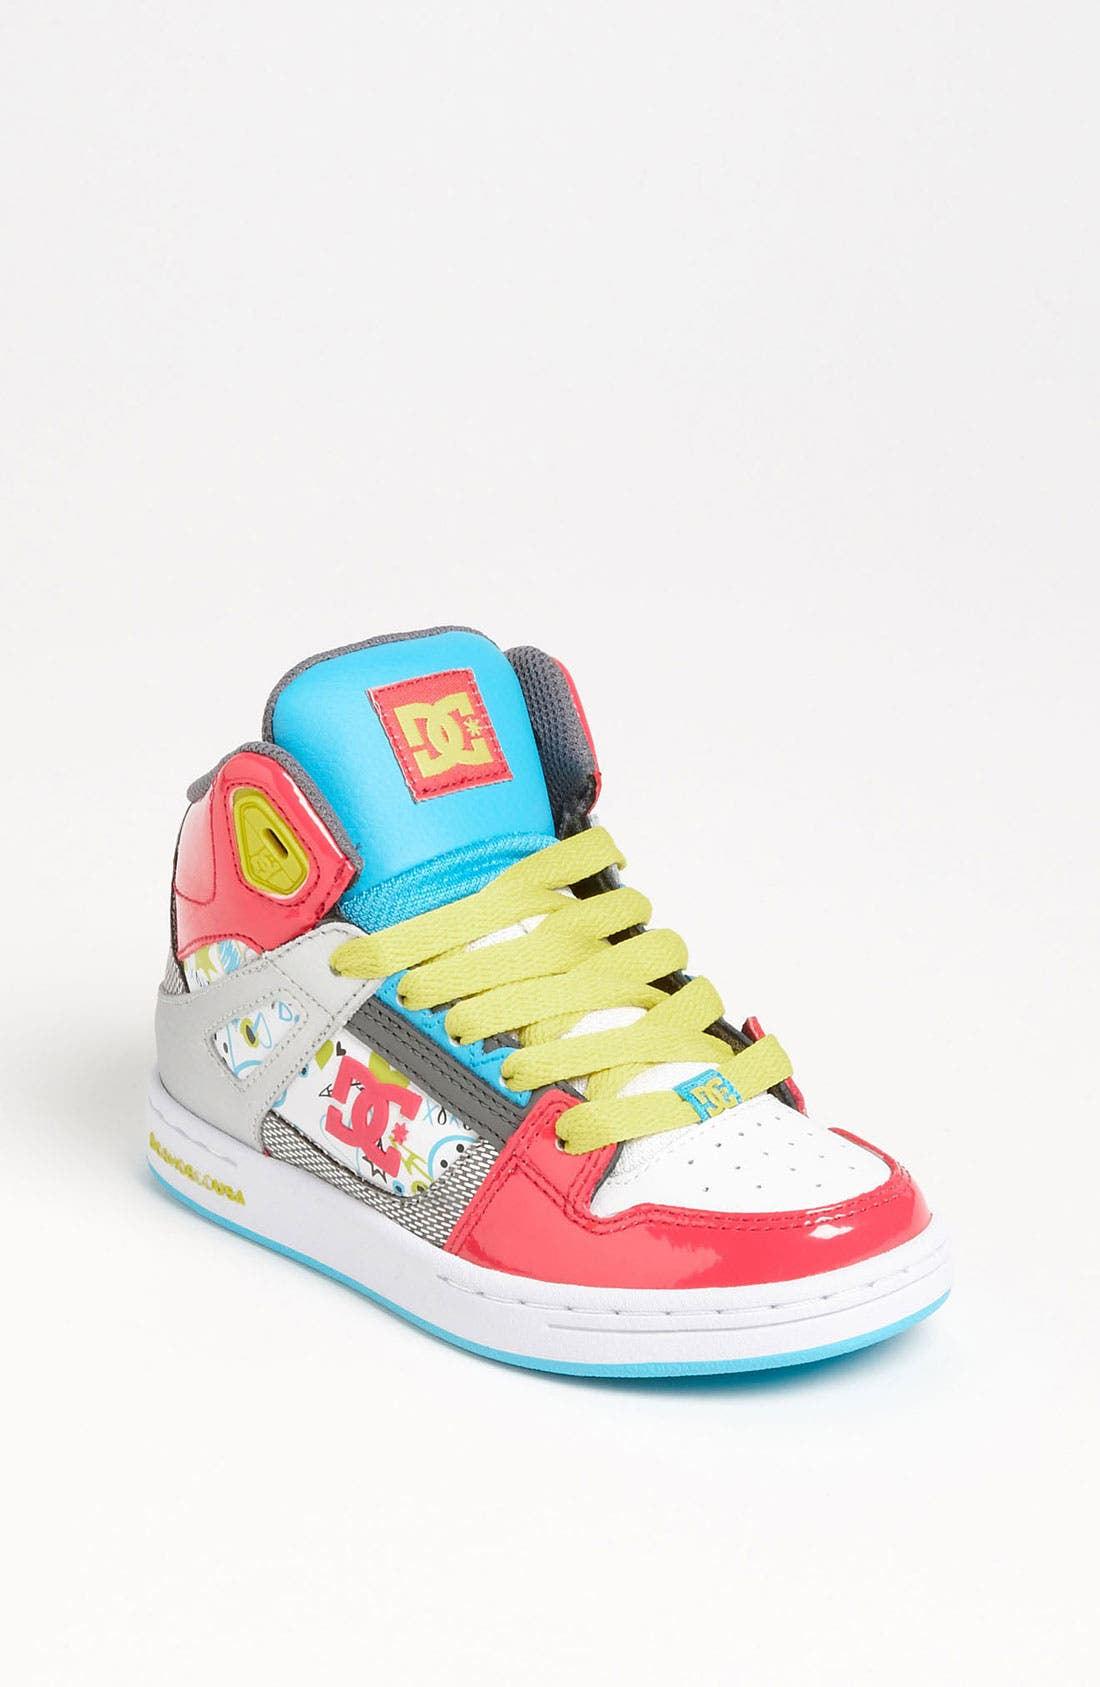 Alternate Image 1 Selected - DC Shoes 'Rebound' Skate Shoe (Toddler, Little Kid & Big Kid)